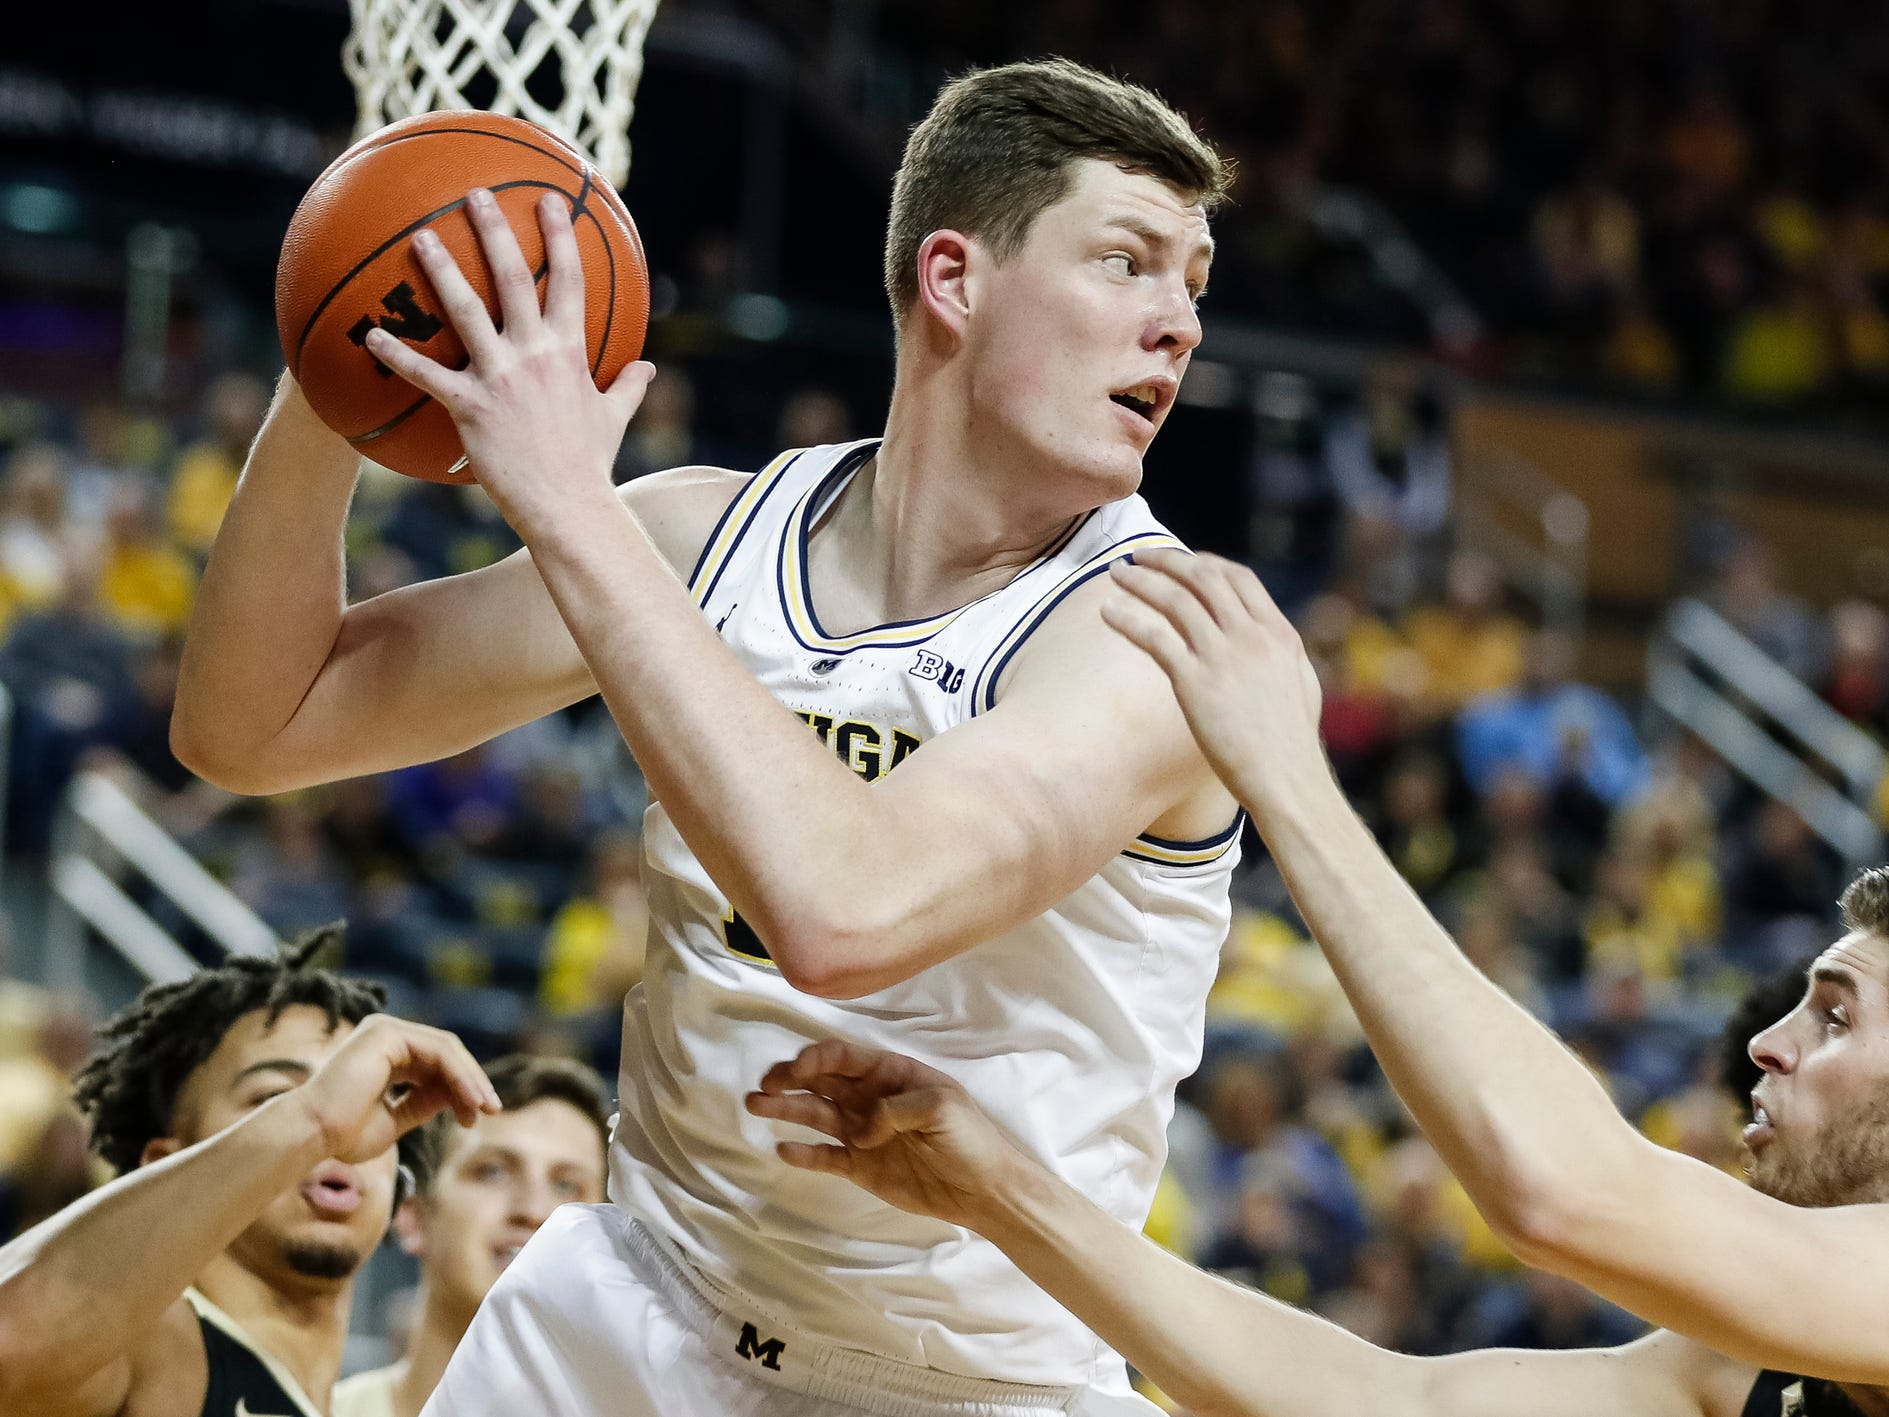 Michigan center Jon Teske (15) looks back for a pass during the first half against Purdue at Crisler Center on Saturday, Dec. 1, 2018.